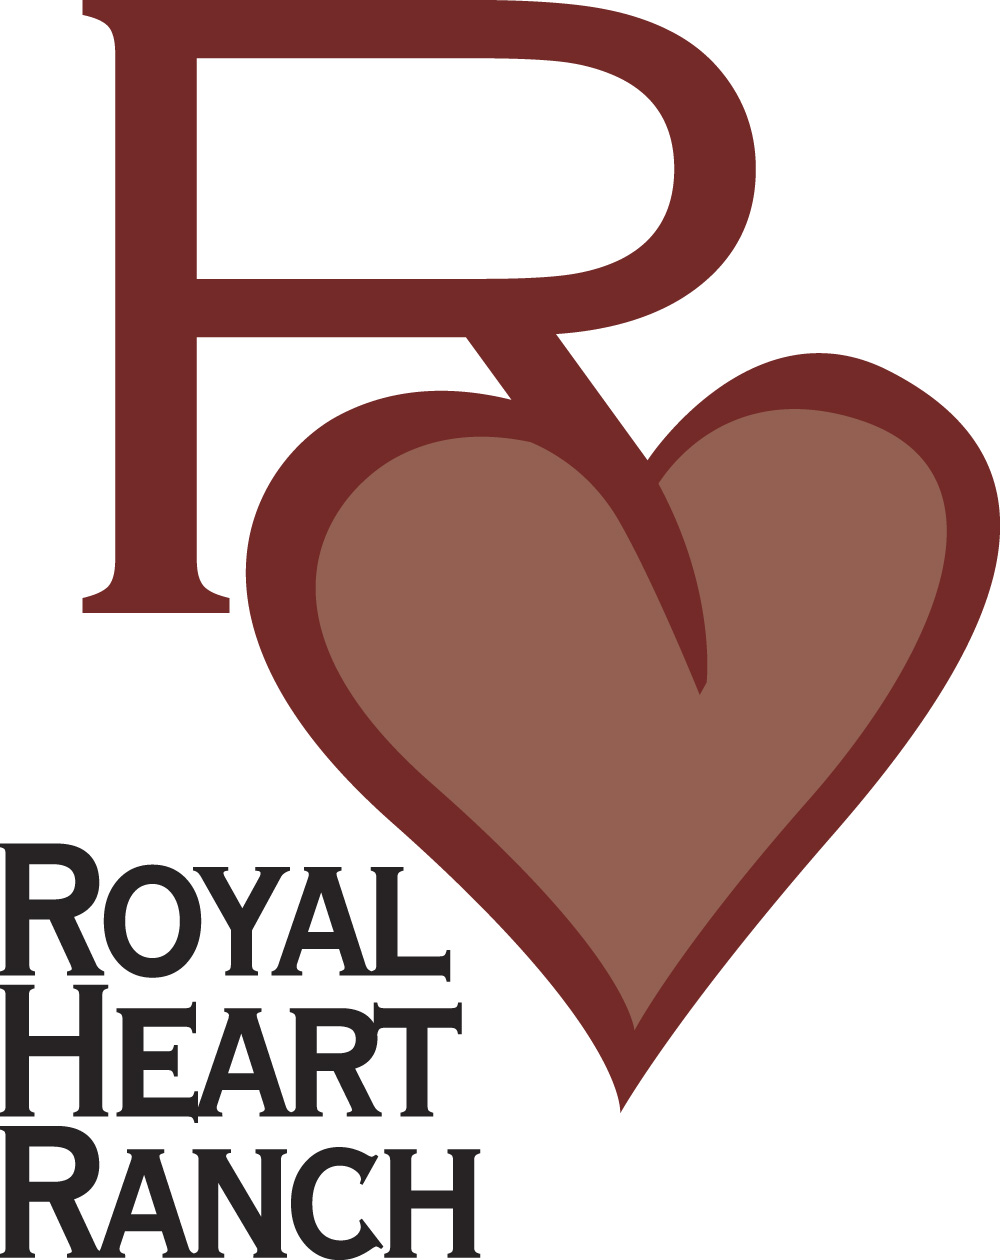 RoyalHeartRanch_Logo.jpg